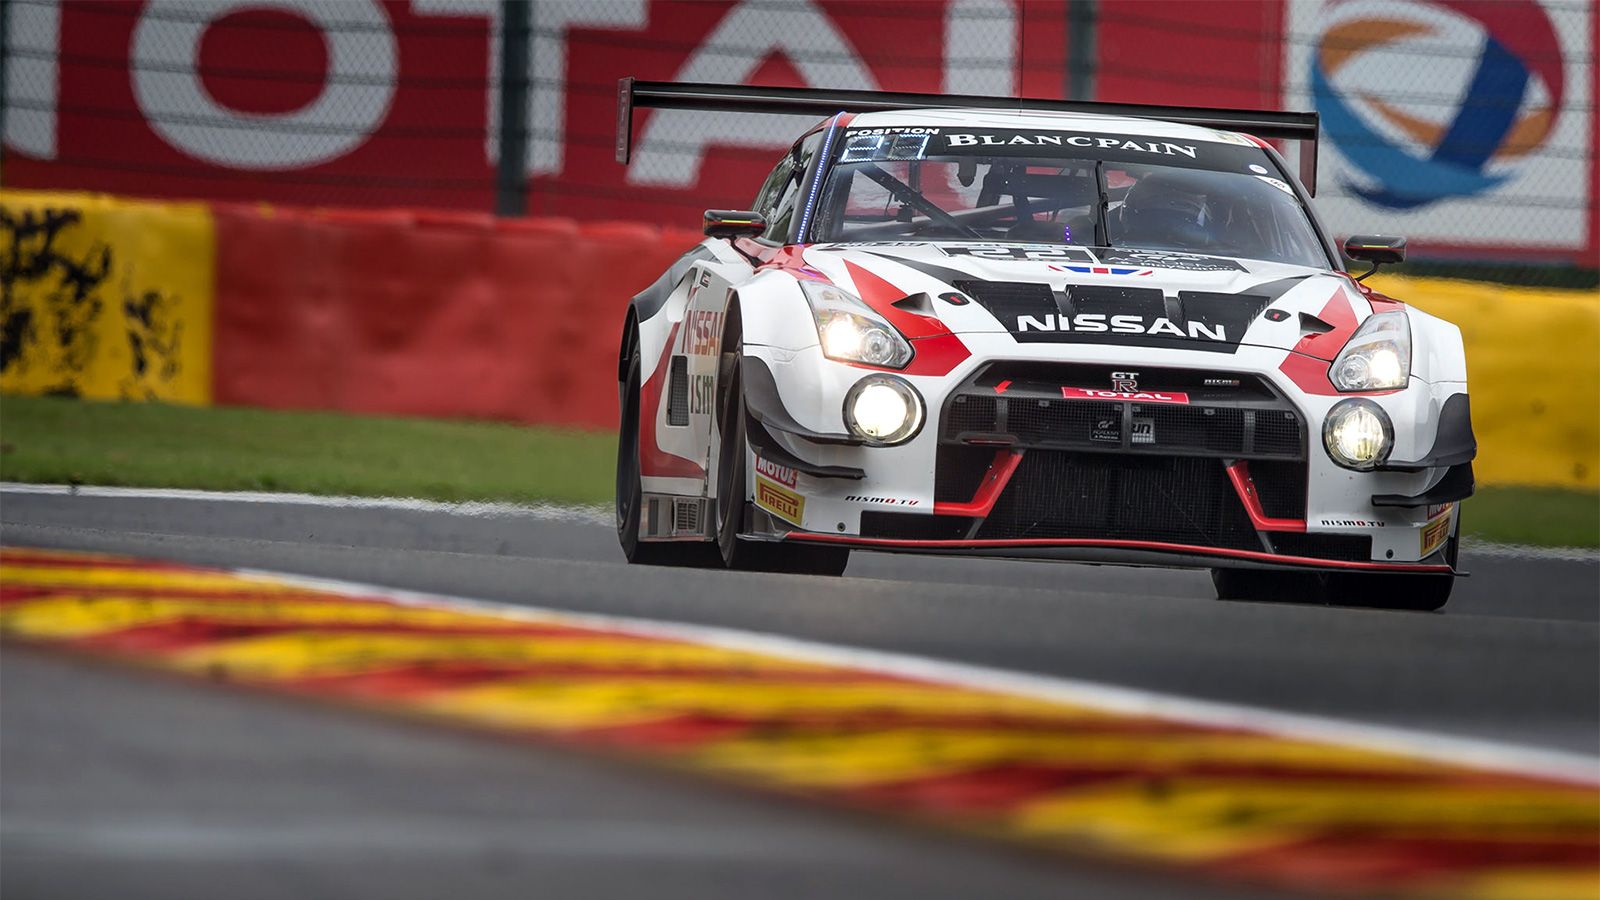 Walkinshaw Looking for Positive End to Blancpain Endurance Cup Campaign